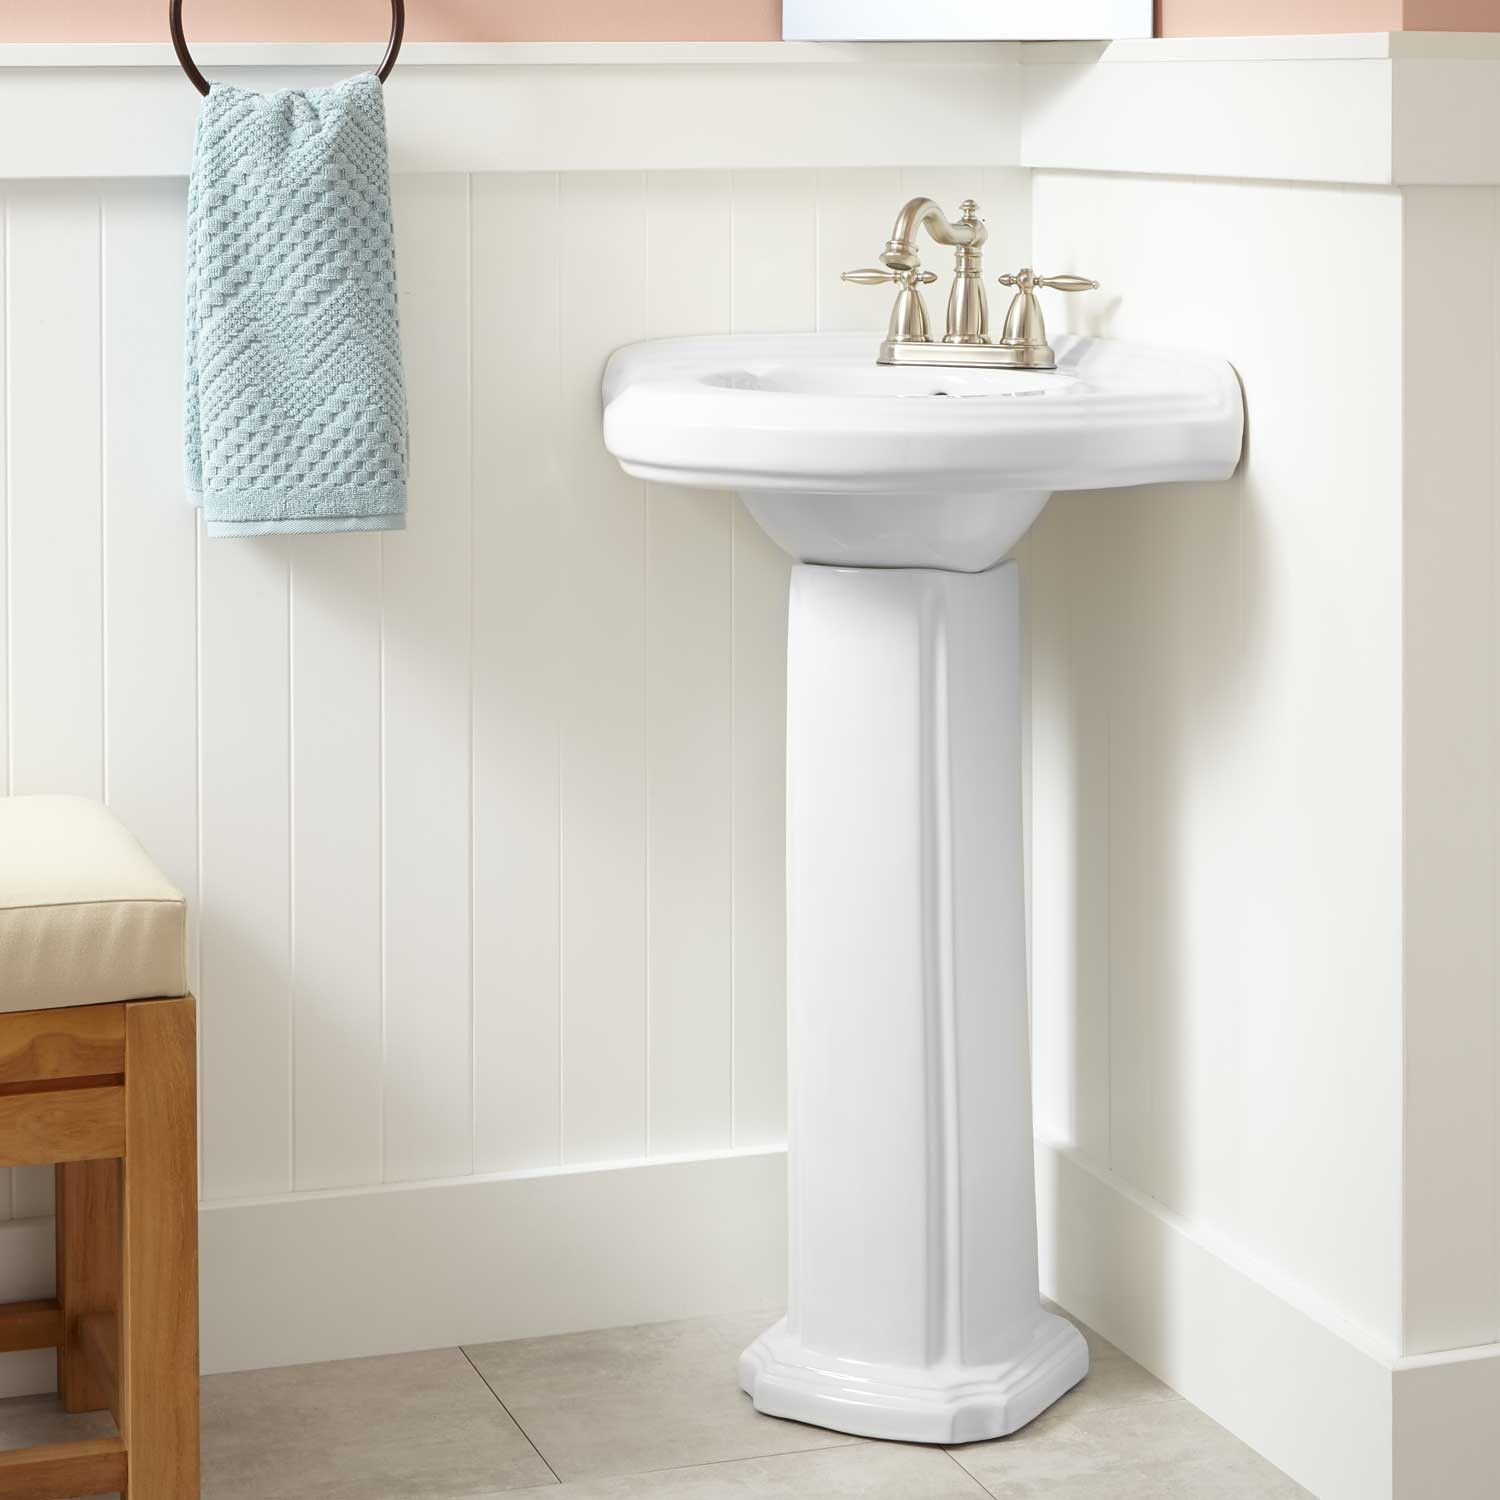 Gaston Corner Porcelain Pedestal Sink In 4 Centers In White